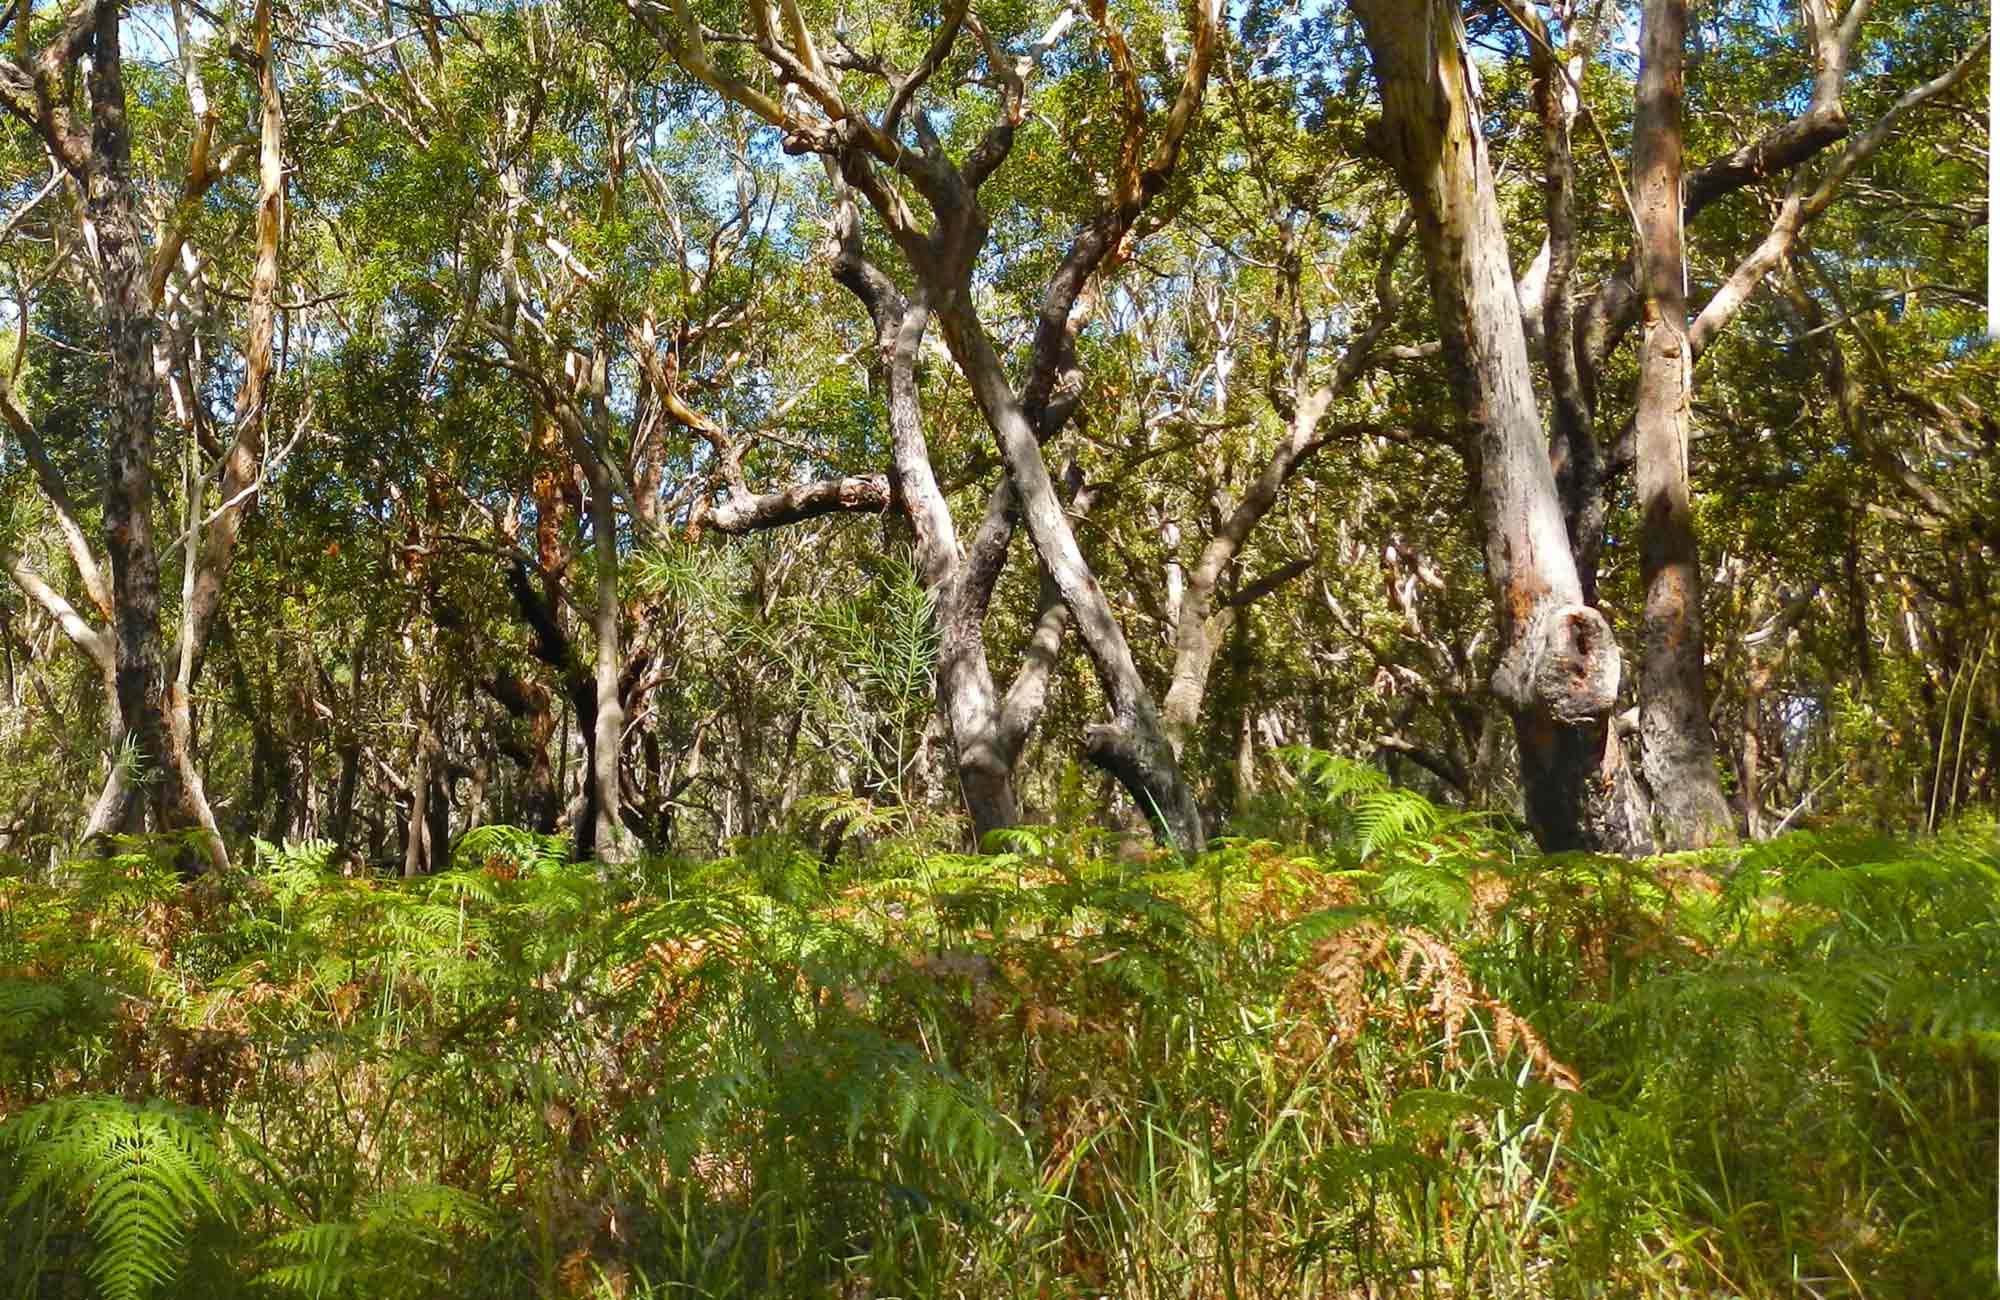 Gum trees. Photo: Debby McGerty